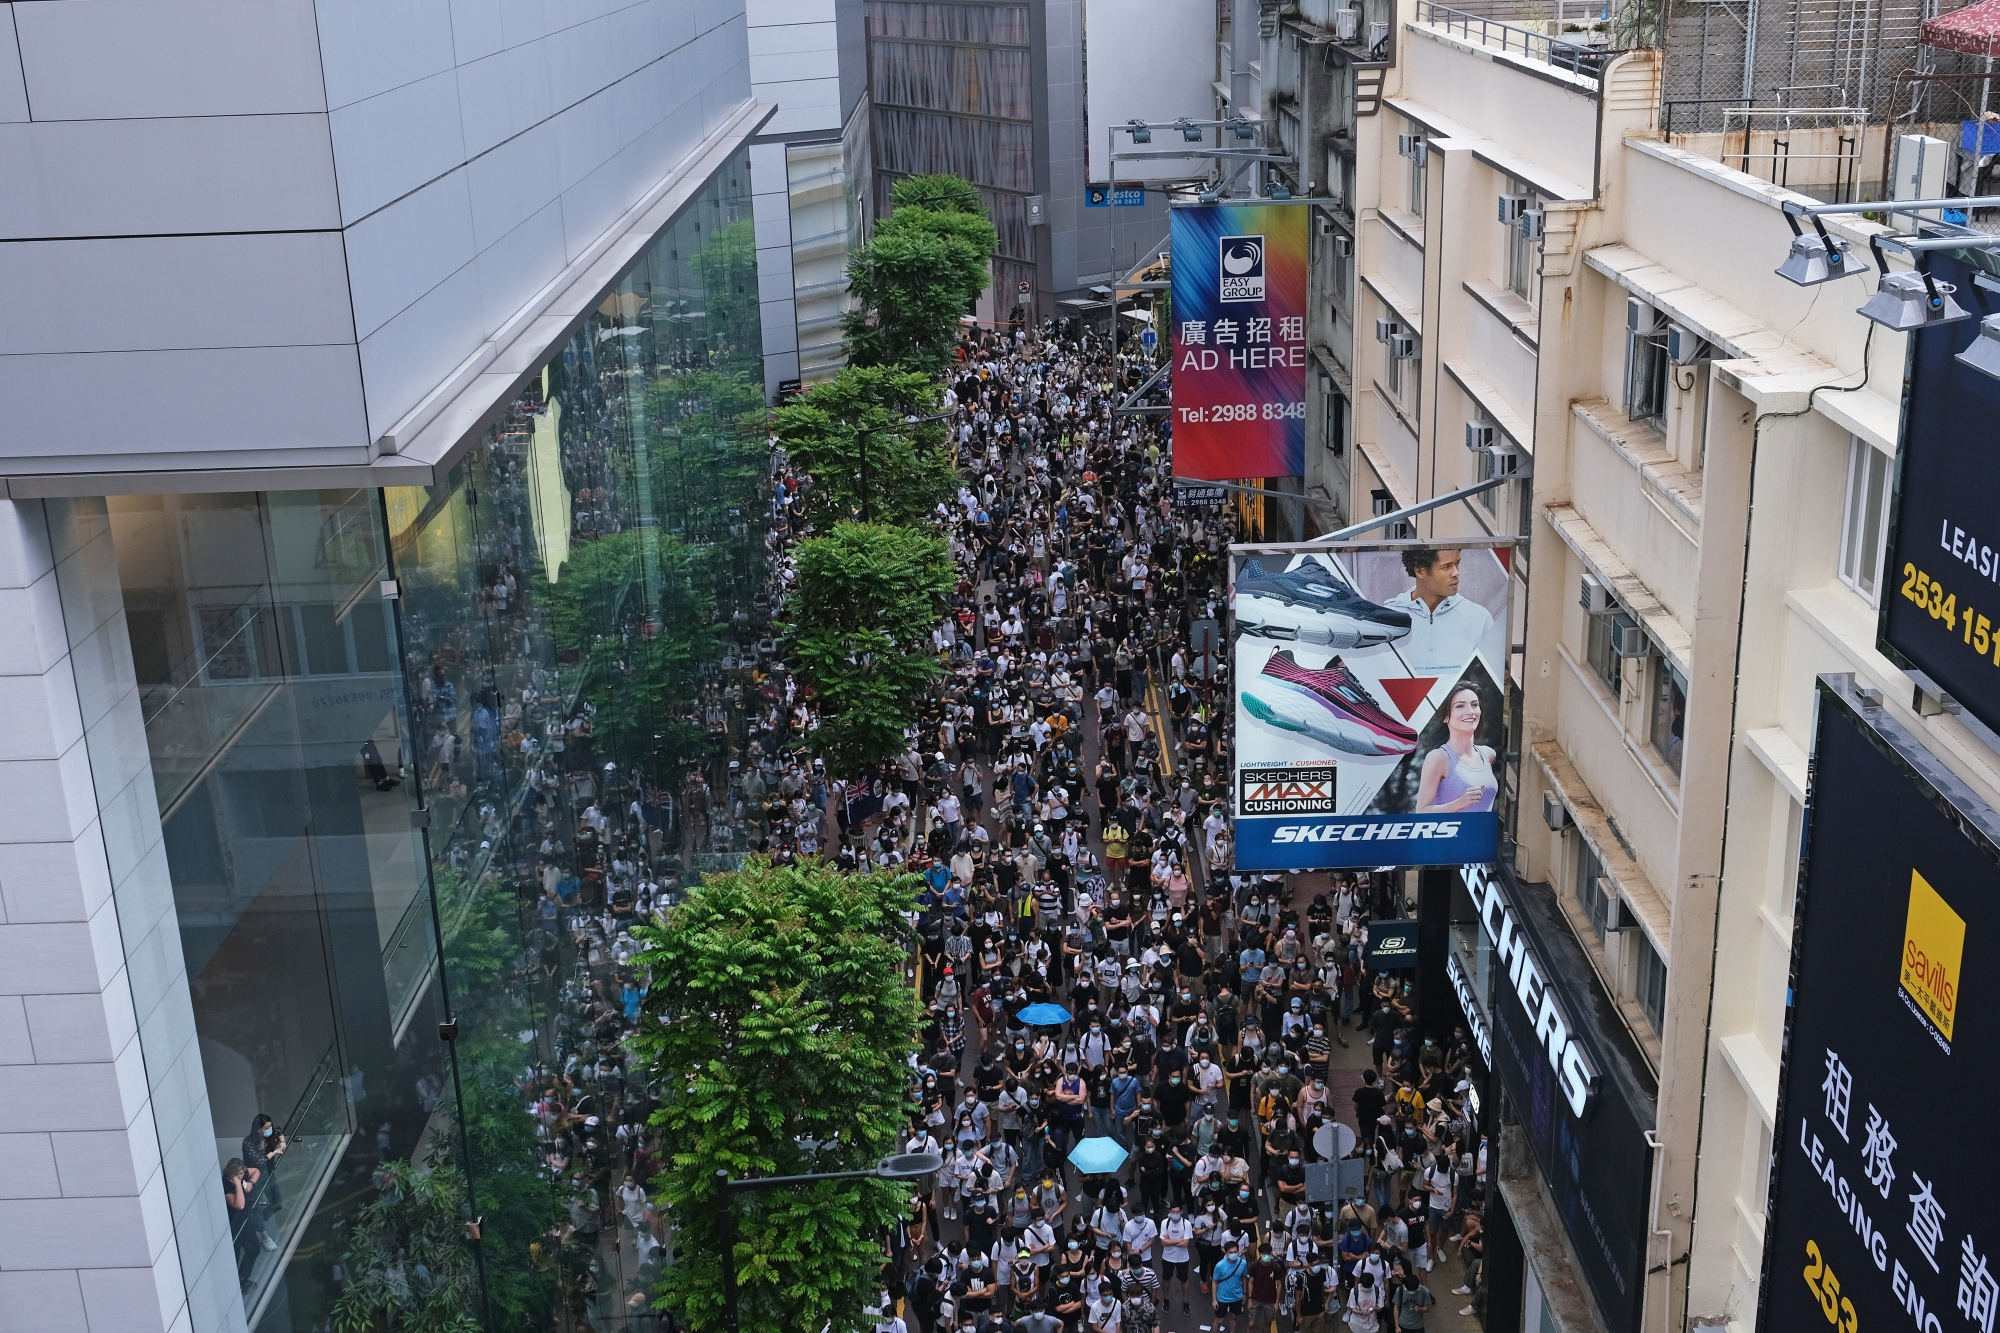 Protests on the Anniversary of Hong Kong's Handover to China amid New Security Law